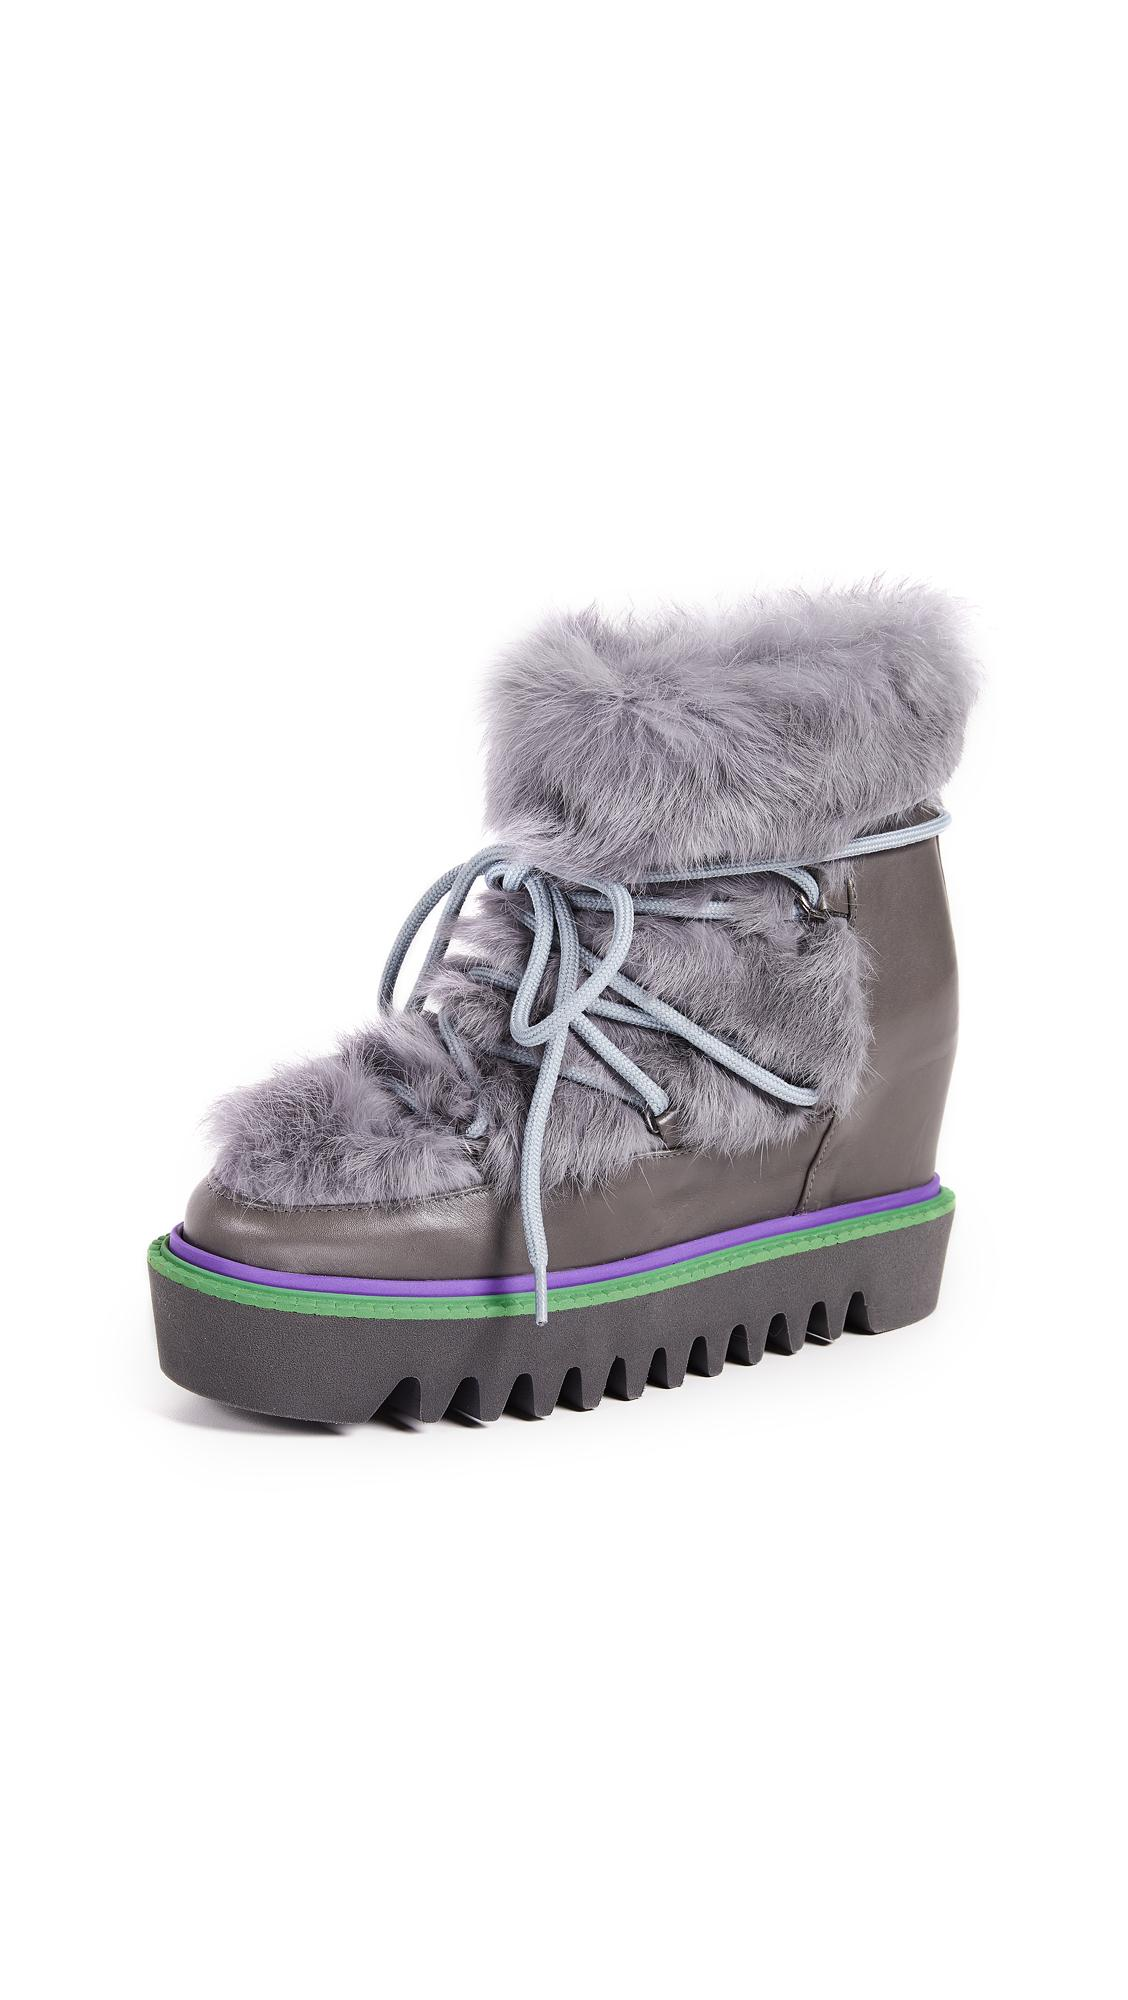 new products 767df 27d45 Triangle Boots in Grey